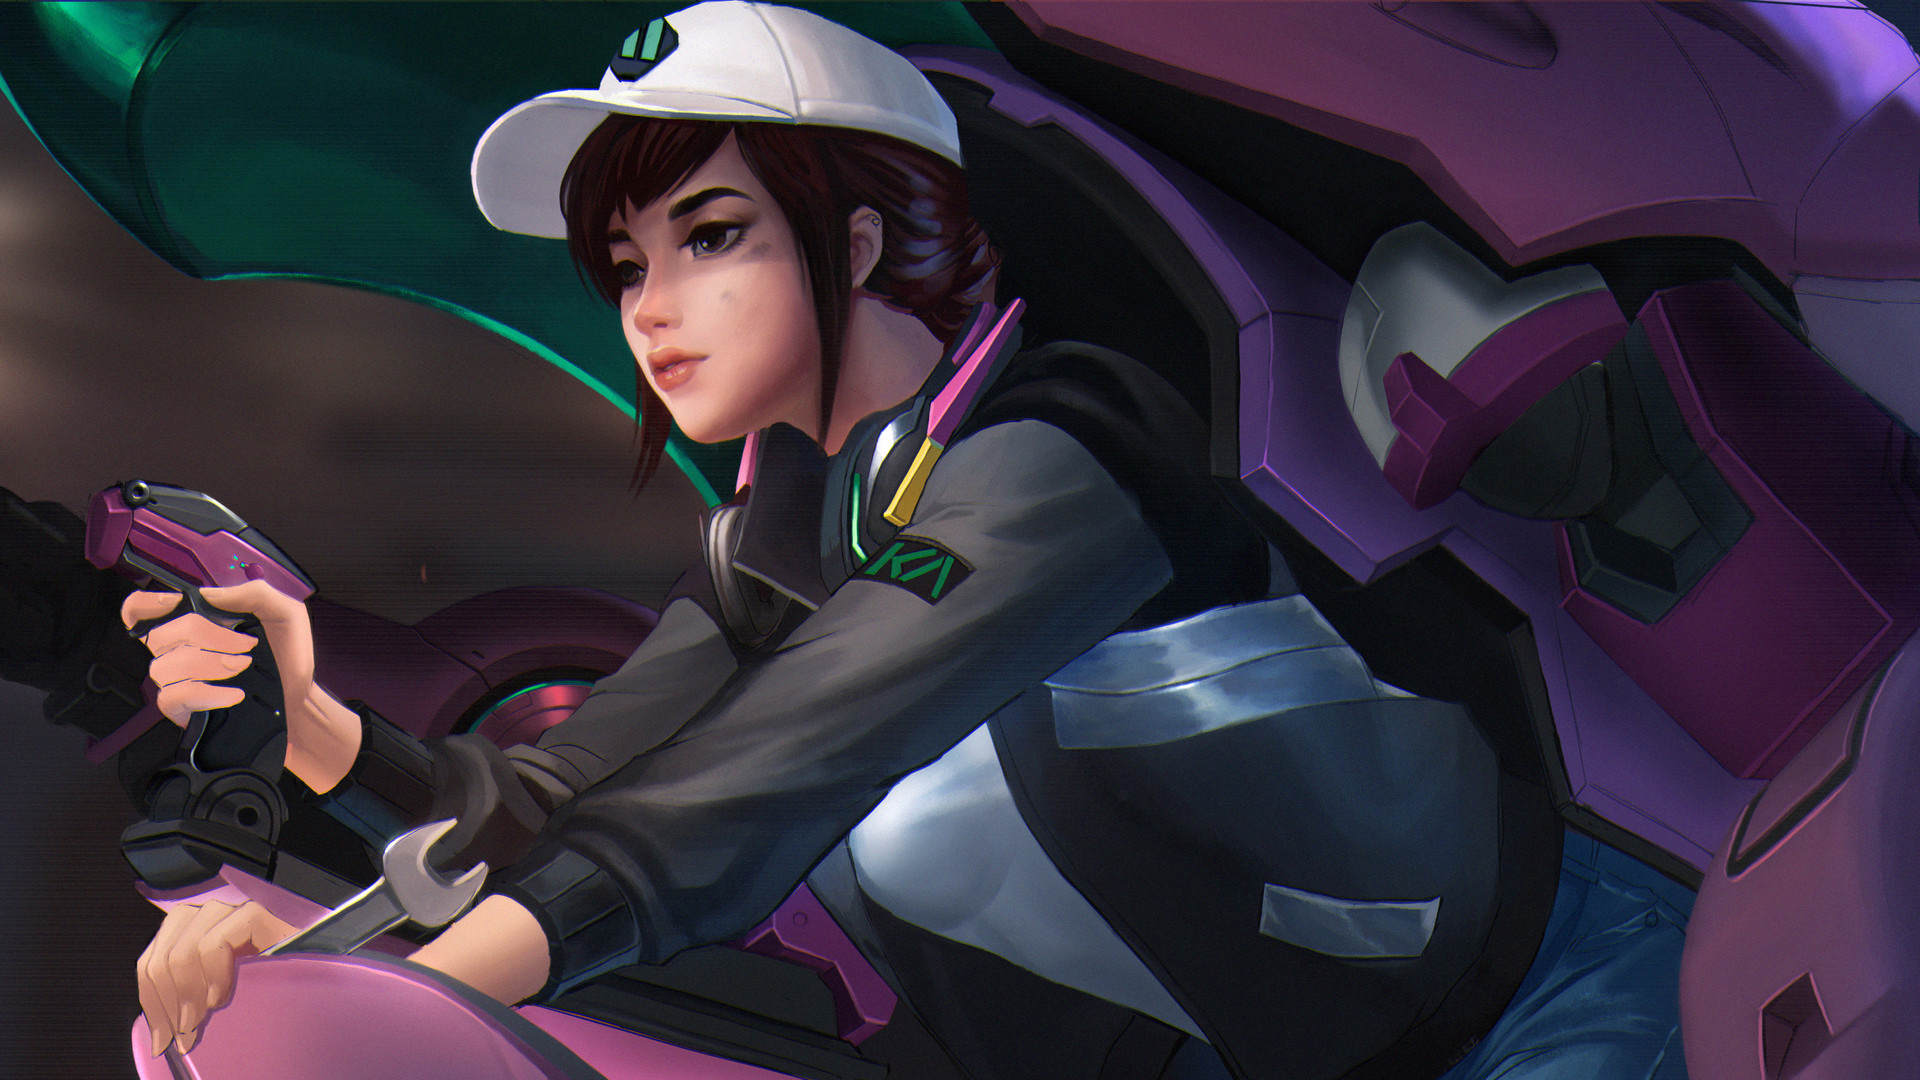 Overwatch Dva Artwork HD HD Games 4k Wallpapers Images Backgrounds Photos And Pictures